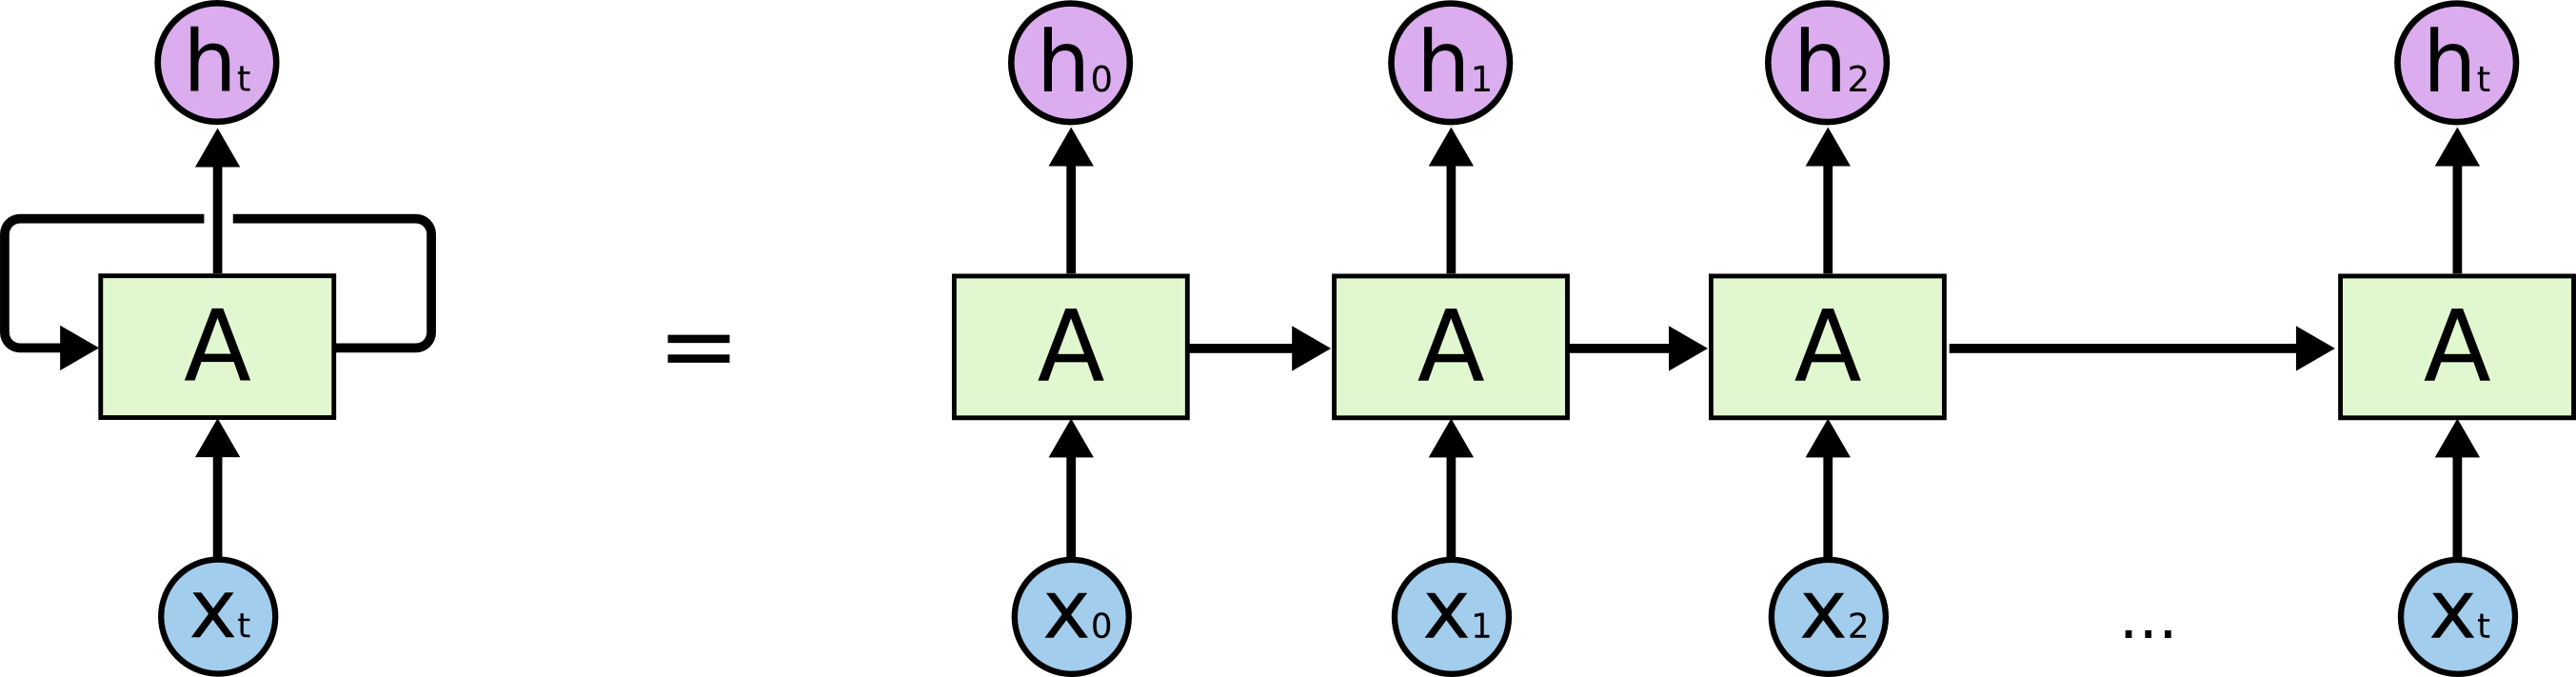 Recurrent Neural Networks-unrolled to forecast stock prices